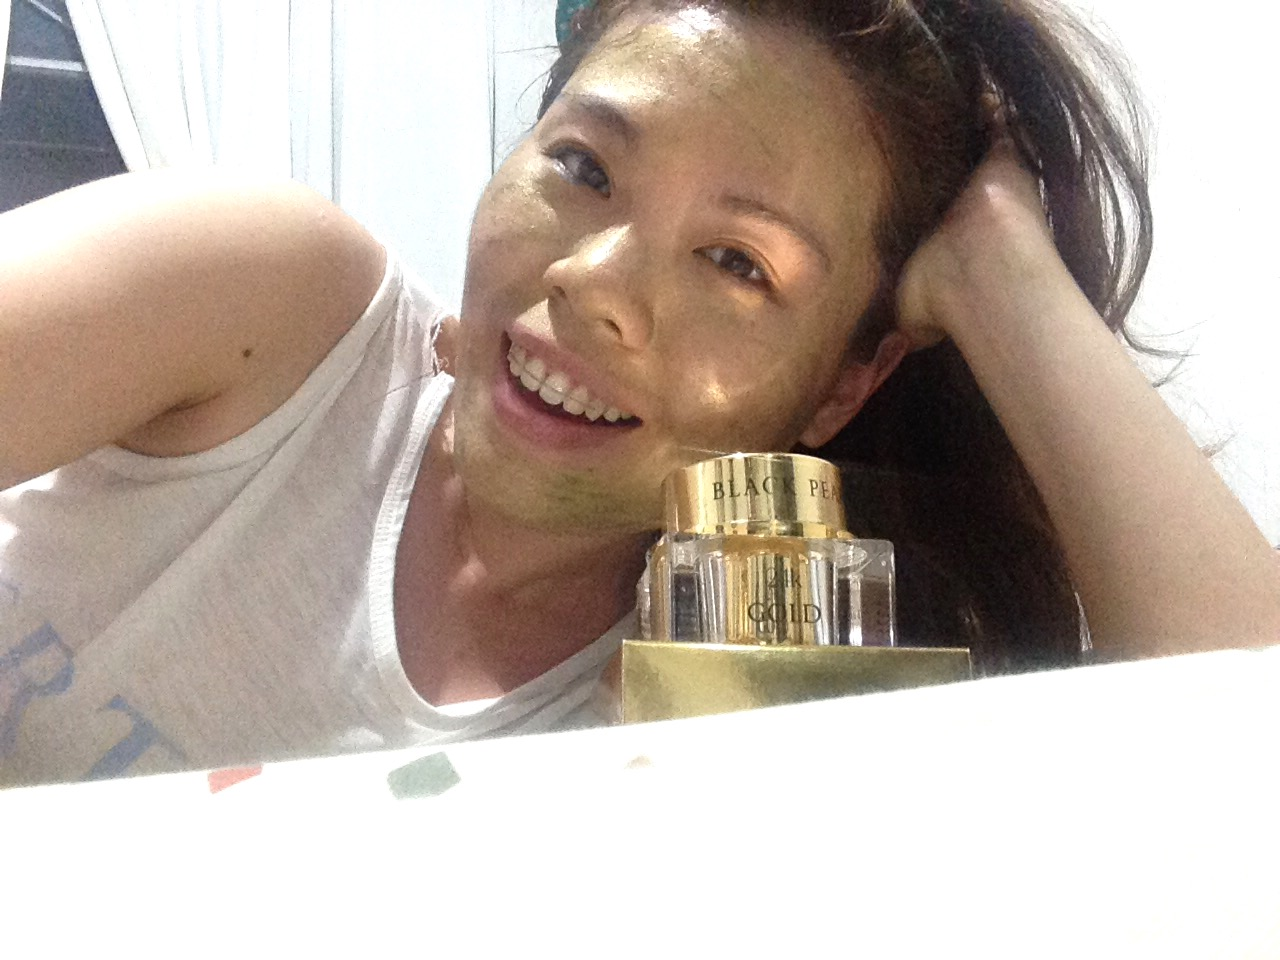 Black Pearl Cosmetics 24k Gold Mask Product Review - With the Mask on